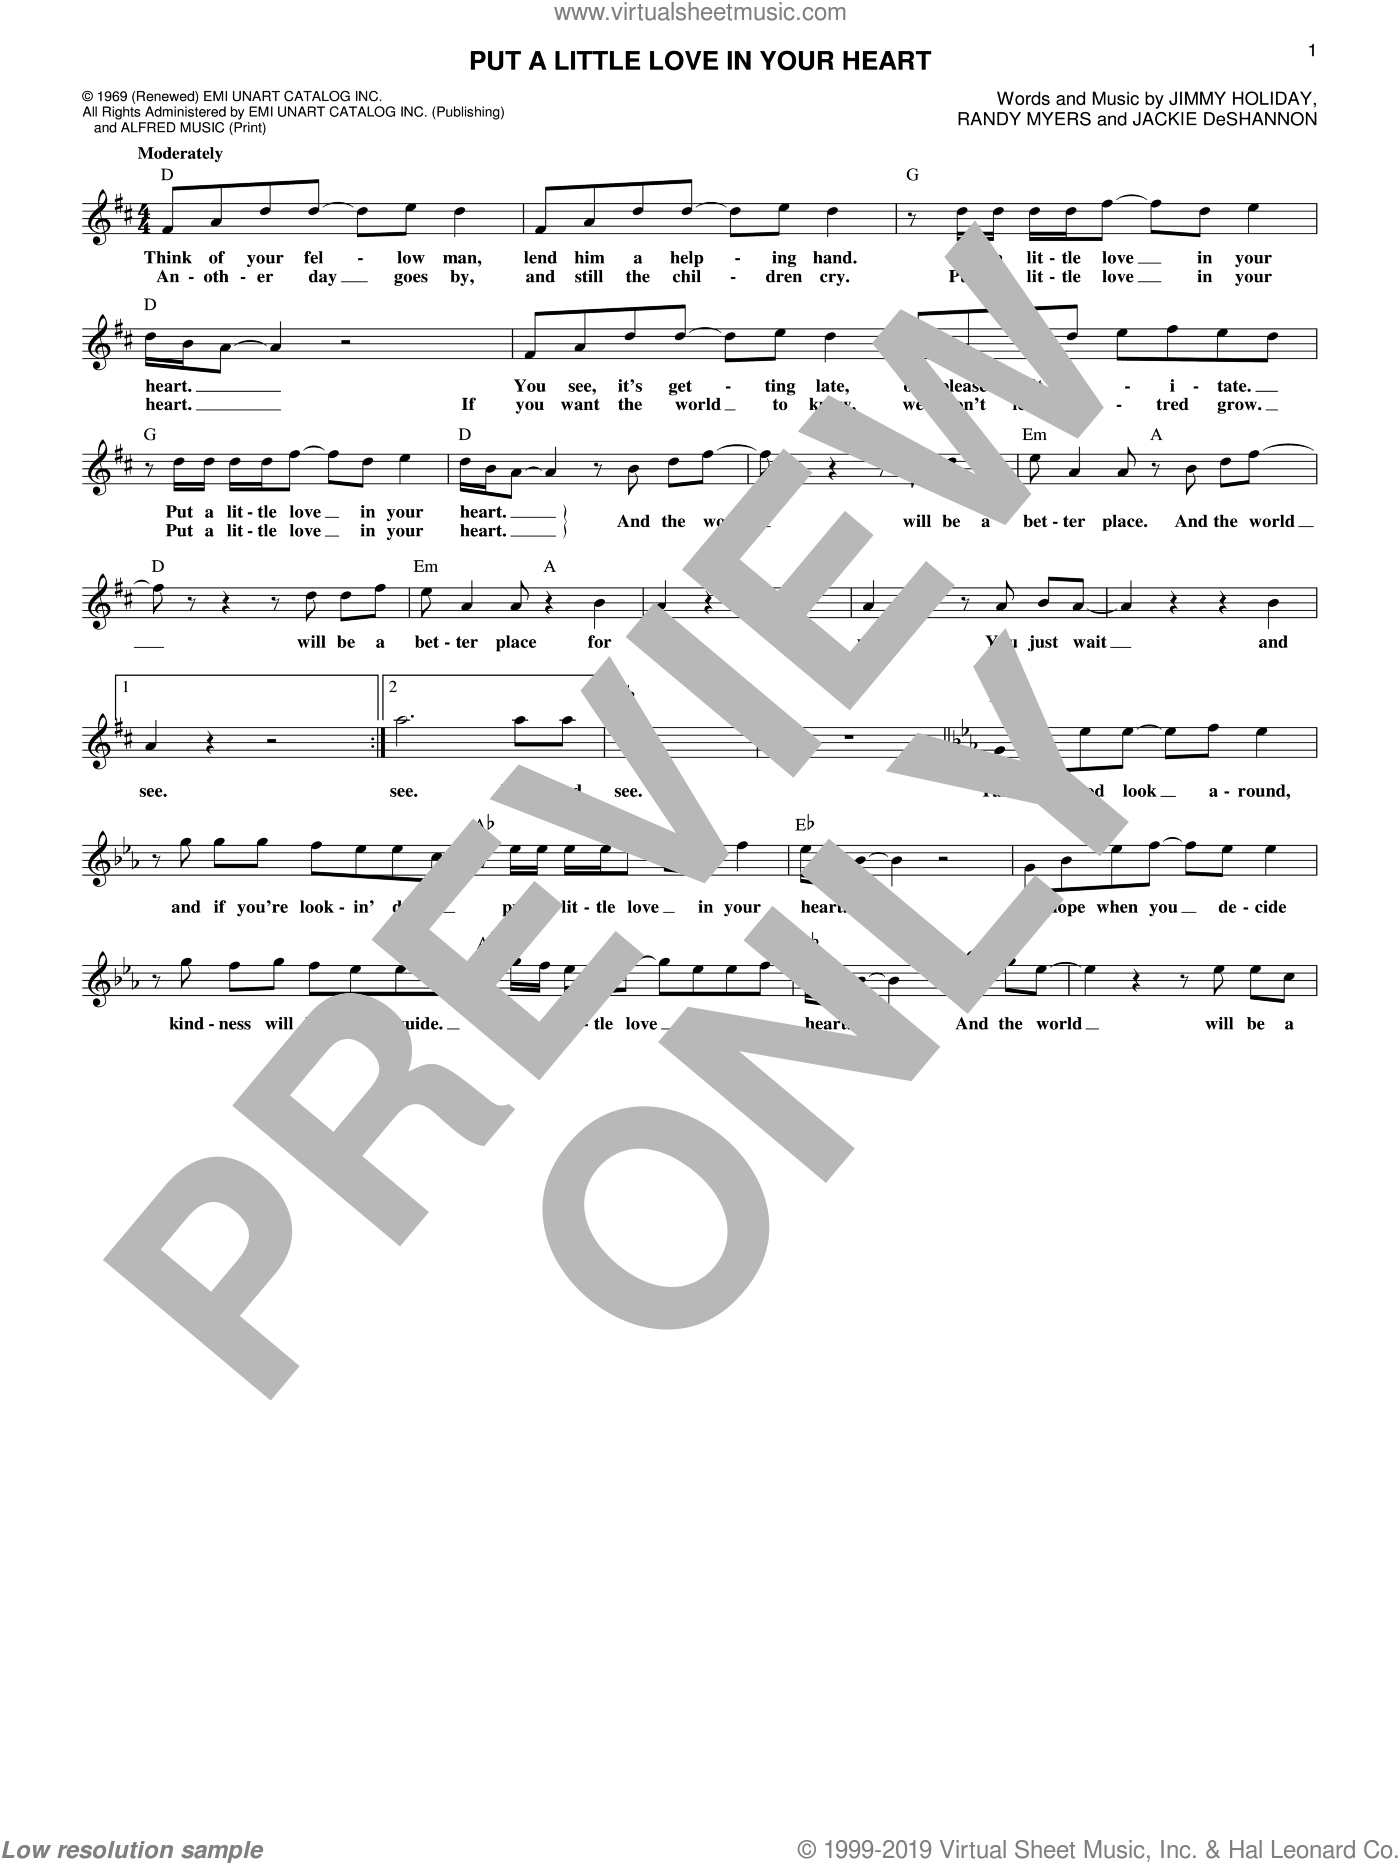 Put A Little Love In Your Heart sheet music for voice and other instruments (fake book) by Jackie DeShannon, Jimmy Holiday and Randy Myers, intermediate skill level